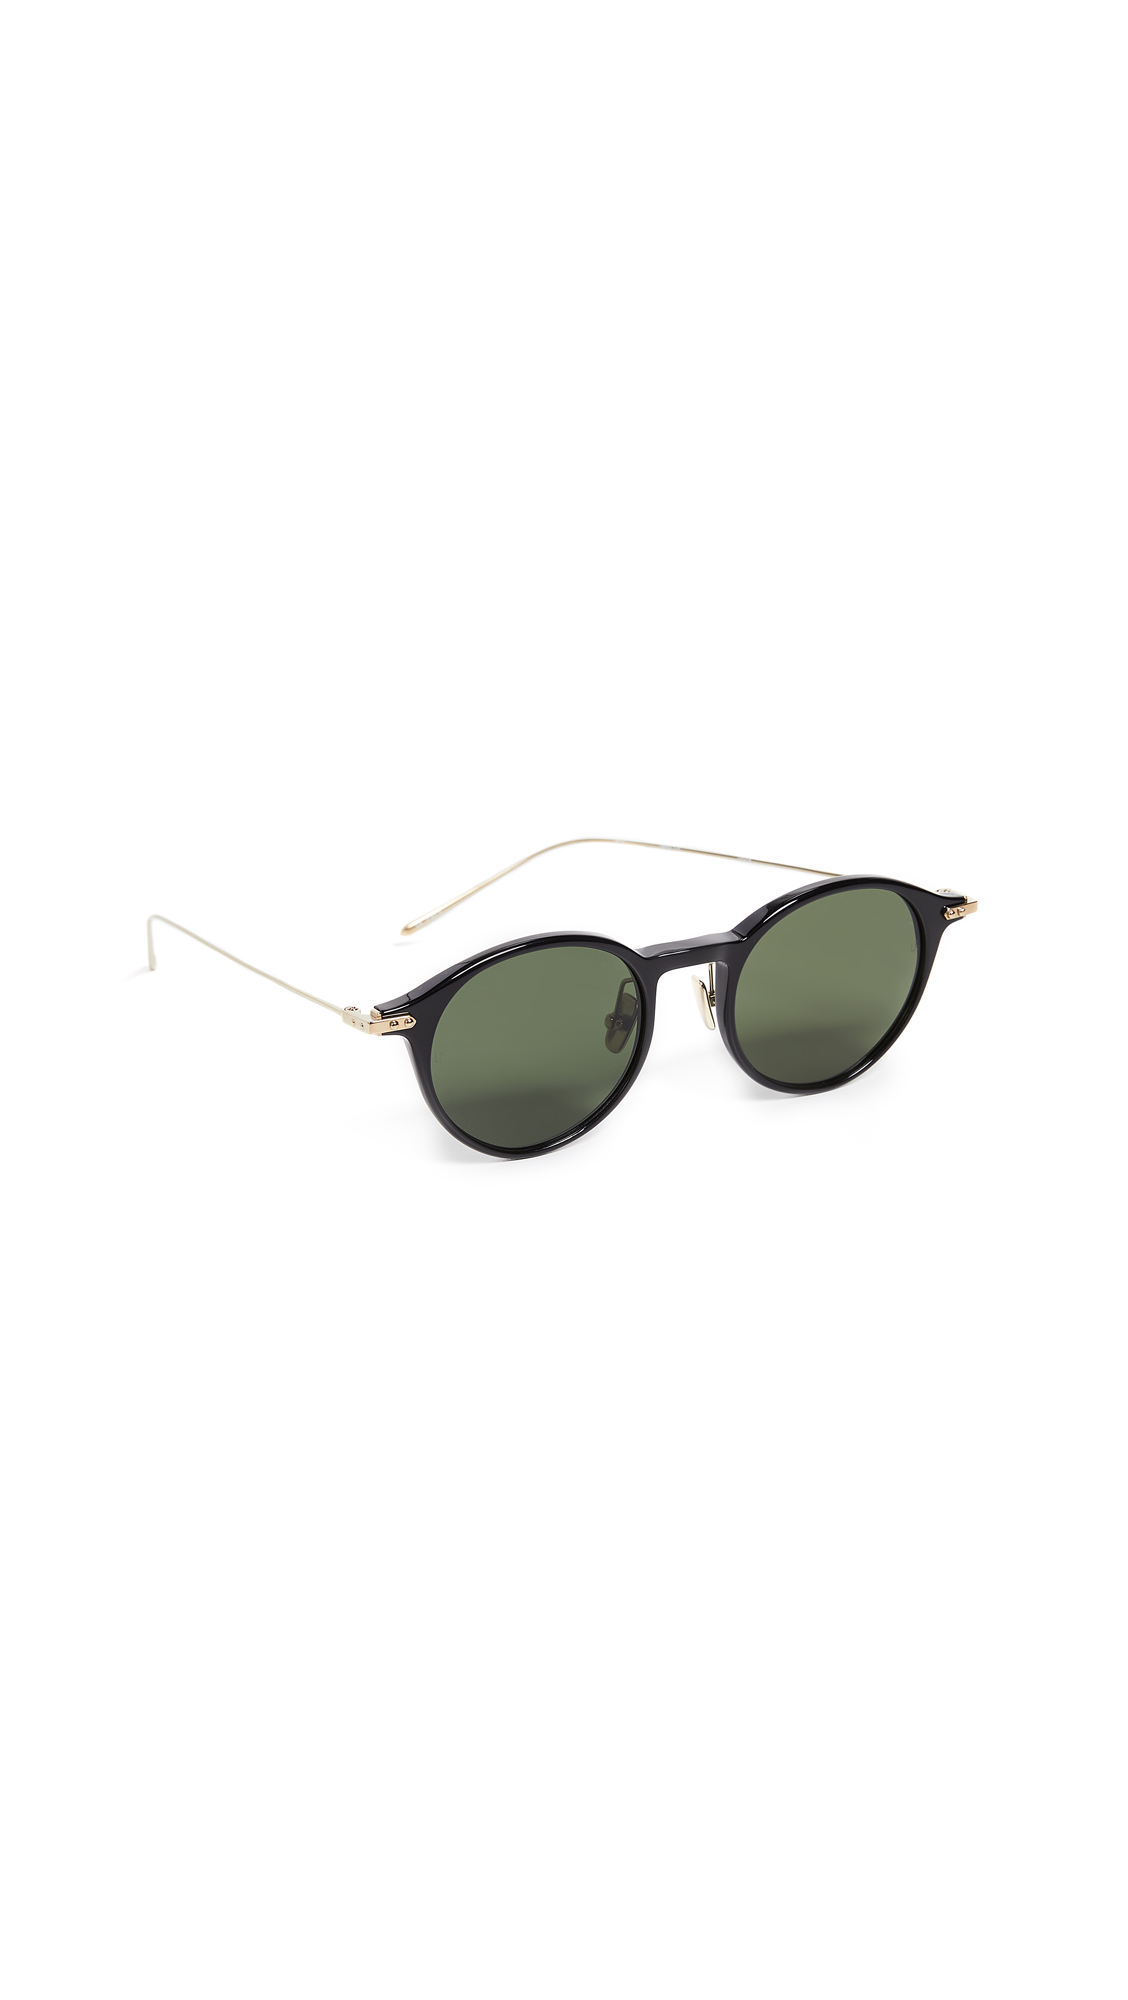 LINDA FARROW LUXE Linear Round Sunglasses in Black/Light Gold/Solid Green